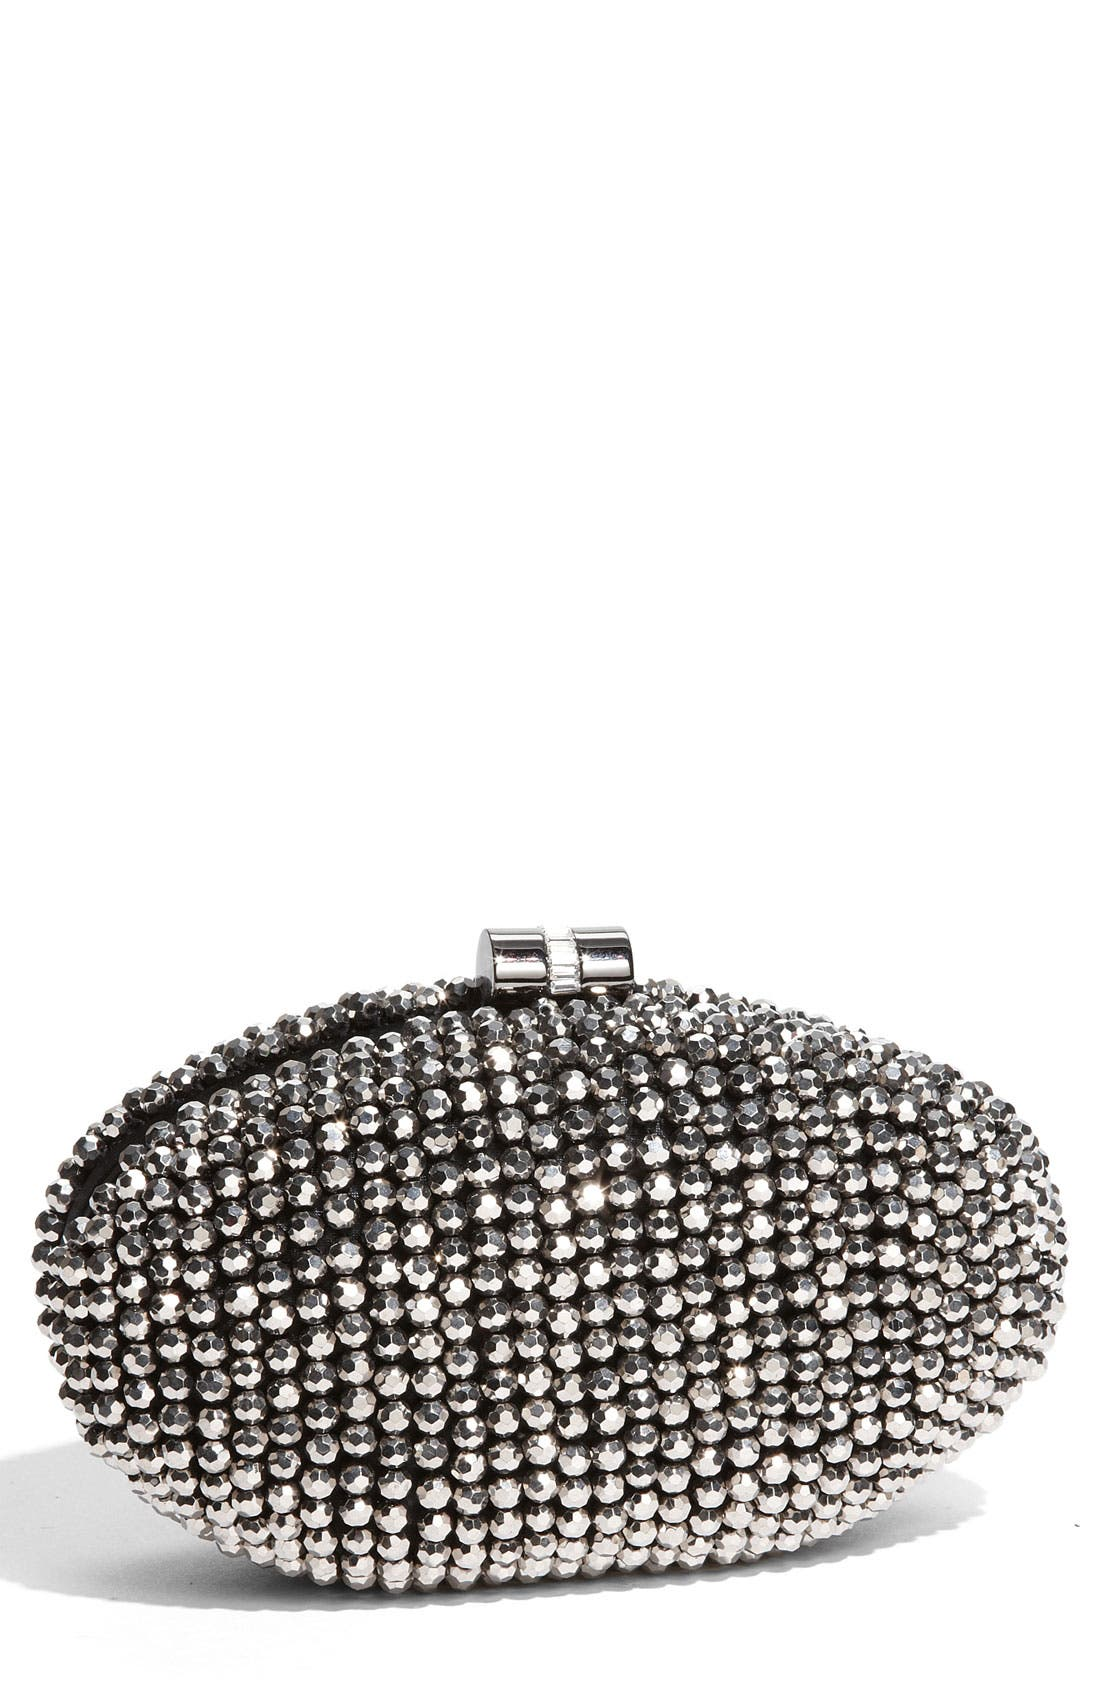 Alternate Image 1 Selected - Sondra Roberts Beaded Minaudiere Box Clutch